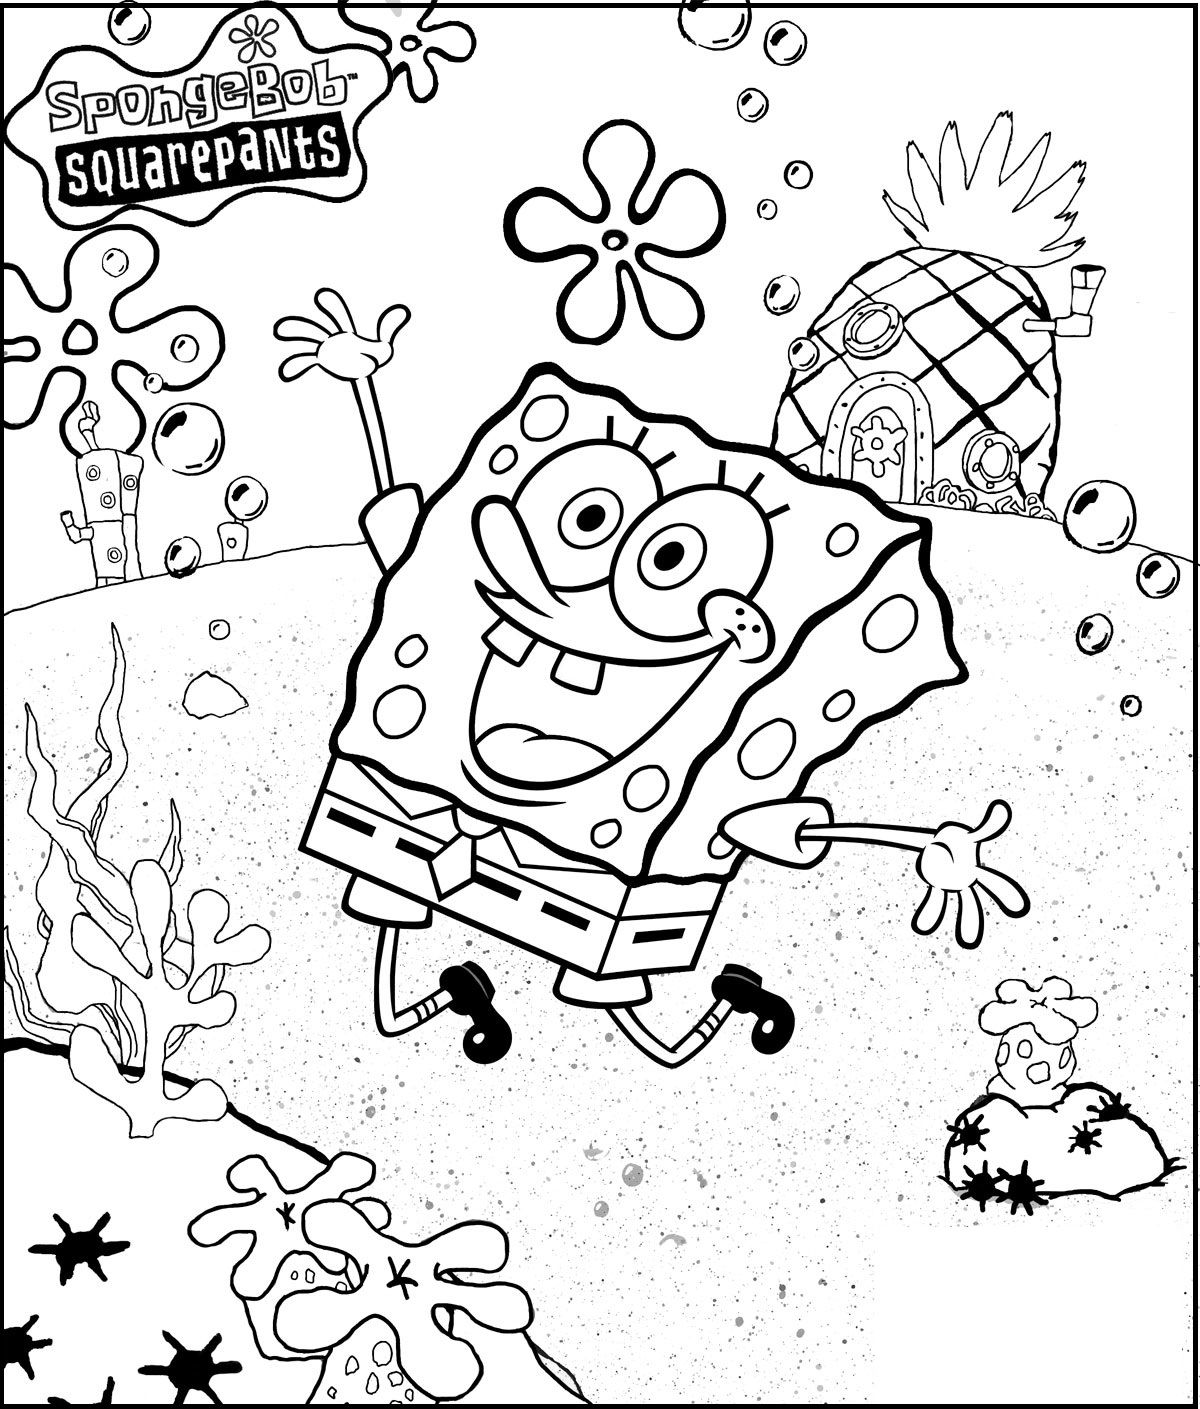 Spongebob Very Merry coloring picture for kids | Projetos para ...